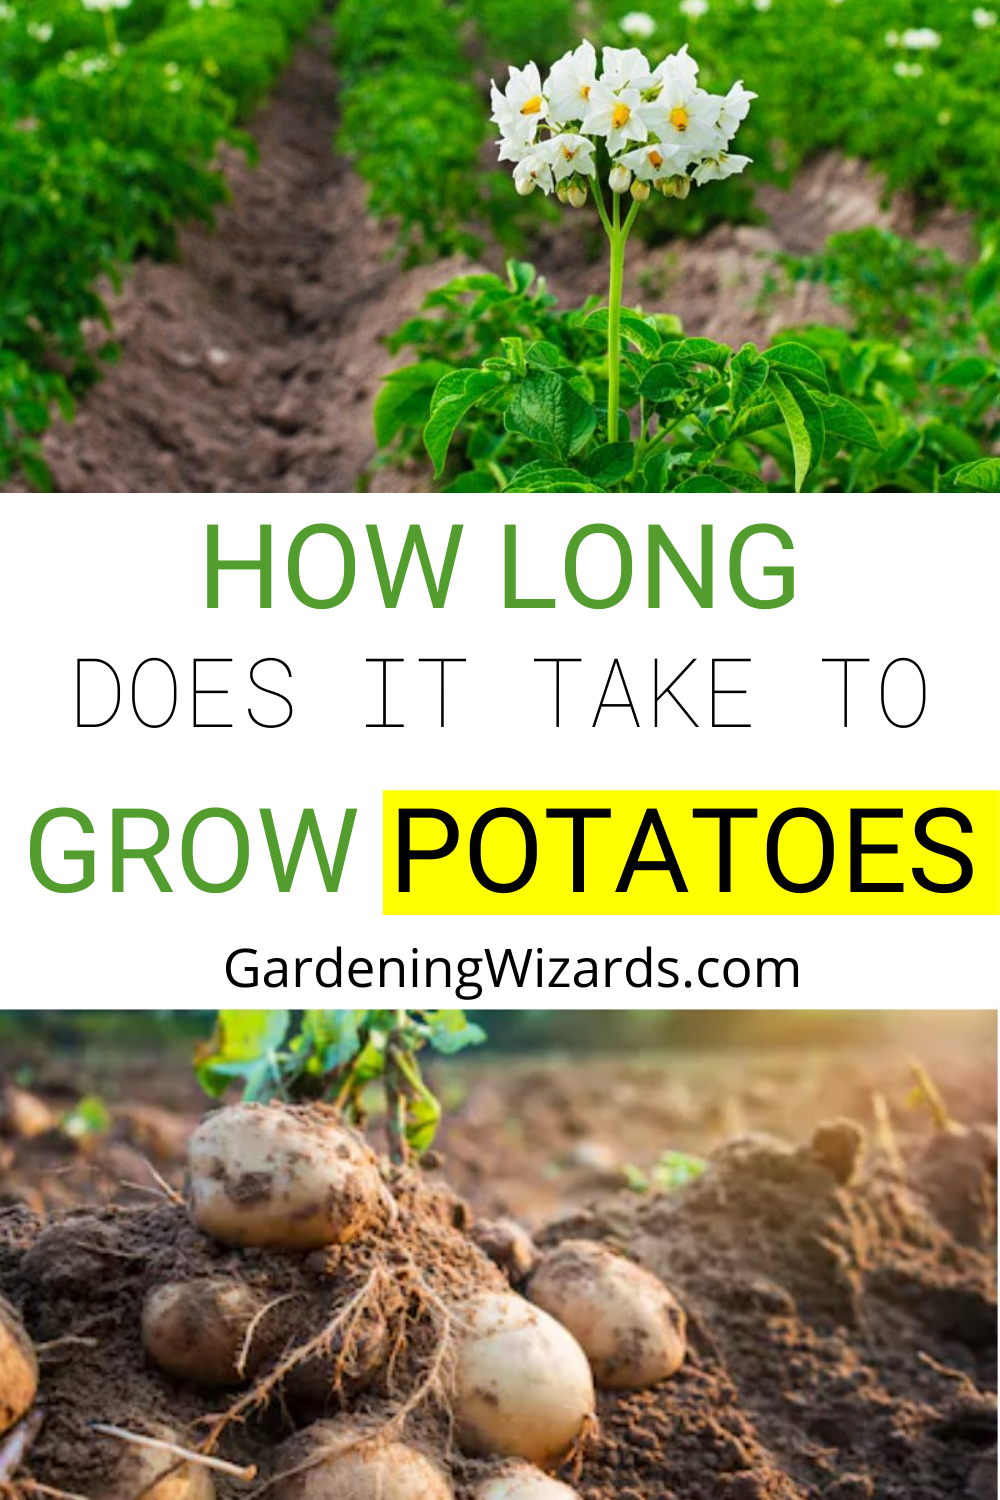 How Long Does It Take To Grow Potatoes Grow A Healthy Yield Of Potatoes With No Fuss Growing Potatoes Survival Gardening Potatoes